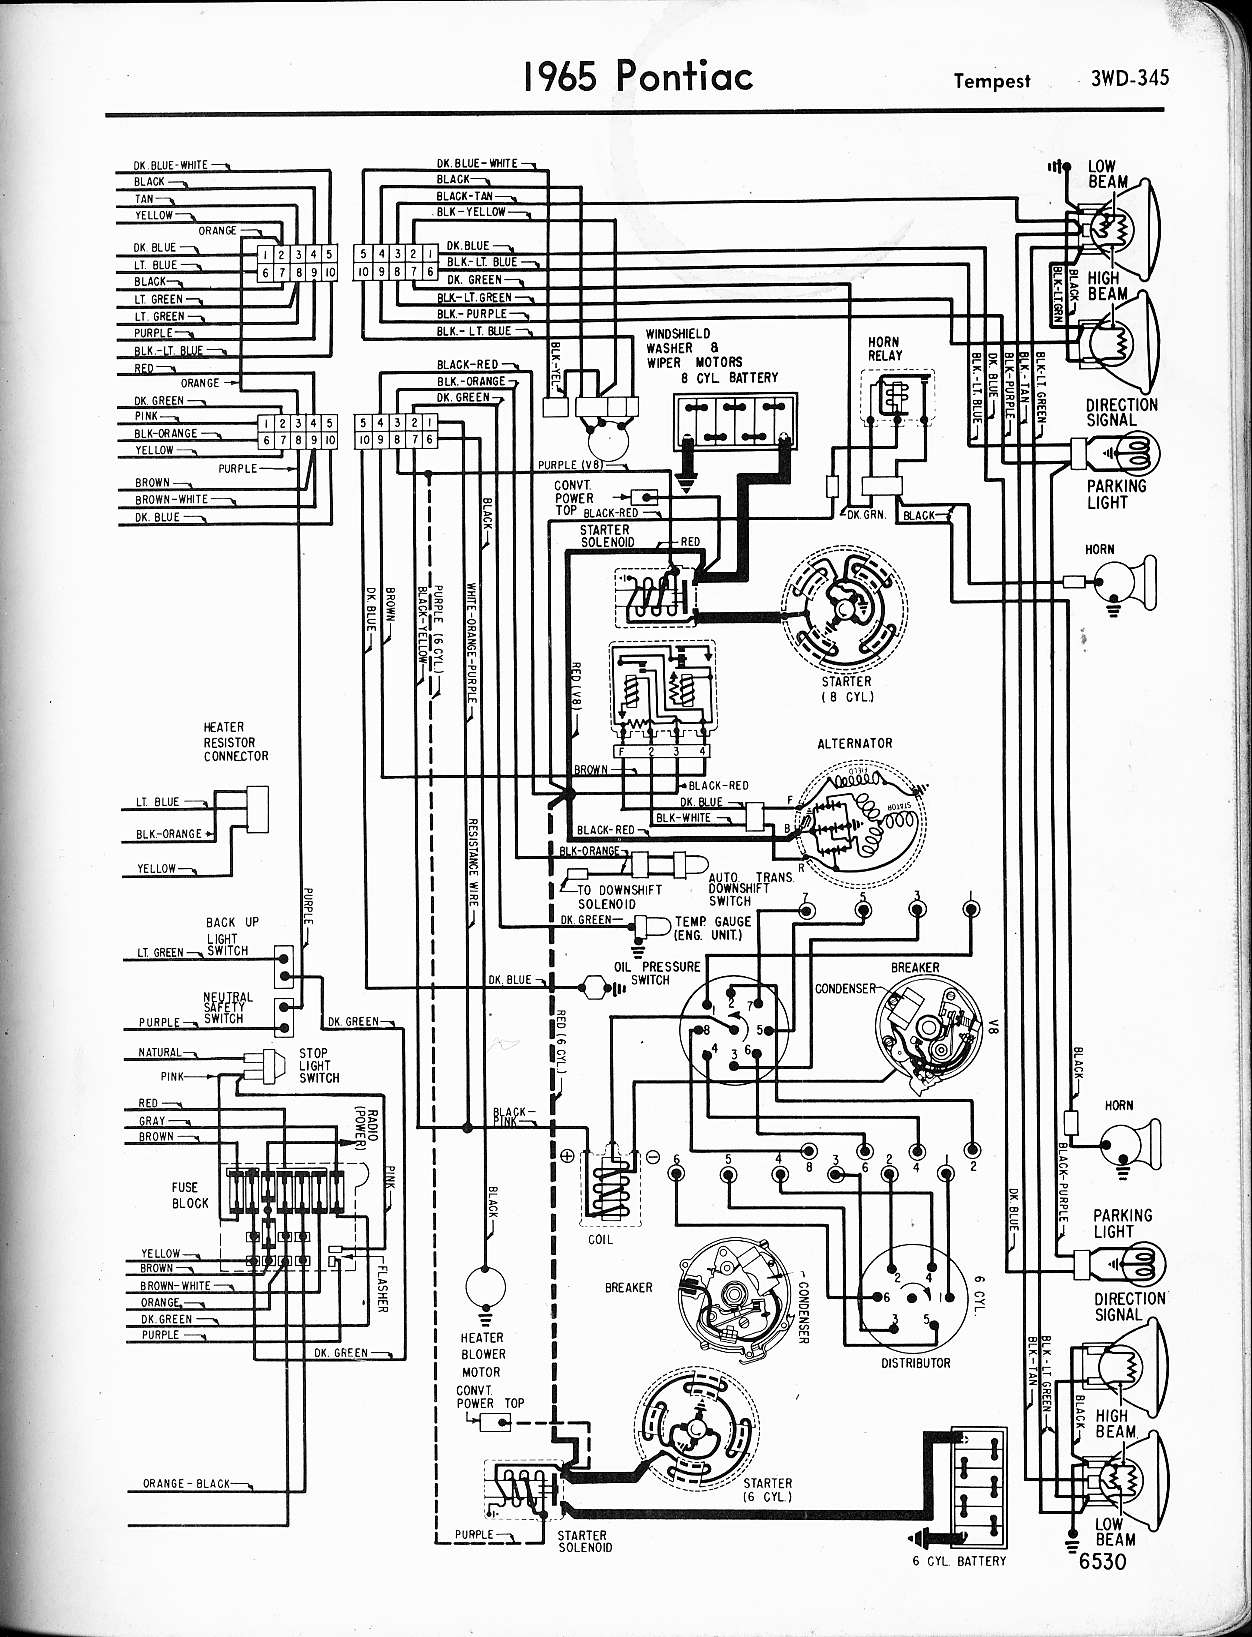 1964 Chevy Starter Wiring Diagram 1964 impala wiring diagram ... on 84 corvette wiring diagram, 84 k2500 wiring diagram, 84 camaro wiring diagram, 84 caprice wiring diagram, 84 k5 blazer wiring diagram, 84 cavalier wiring diagram, 84 k20 wiring diagram,